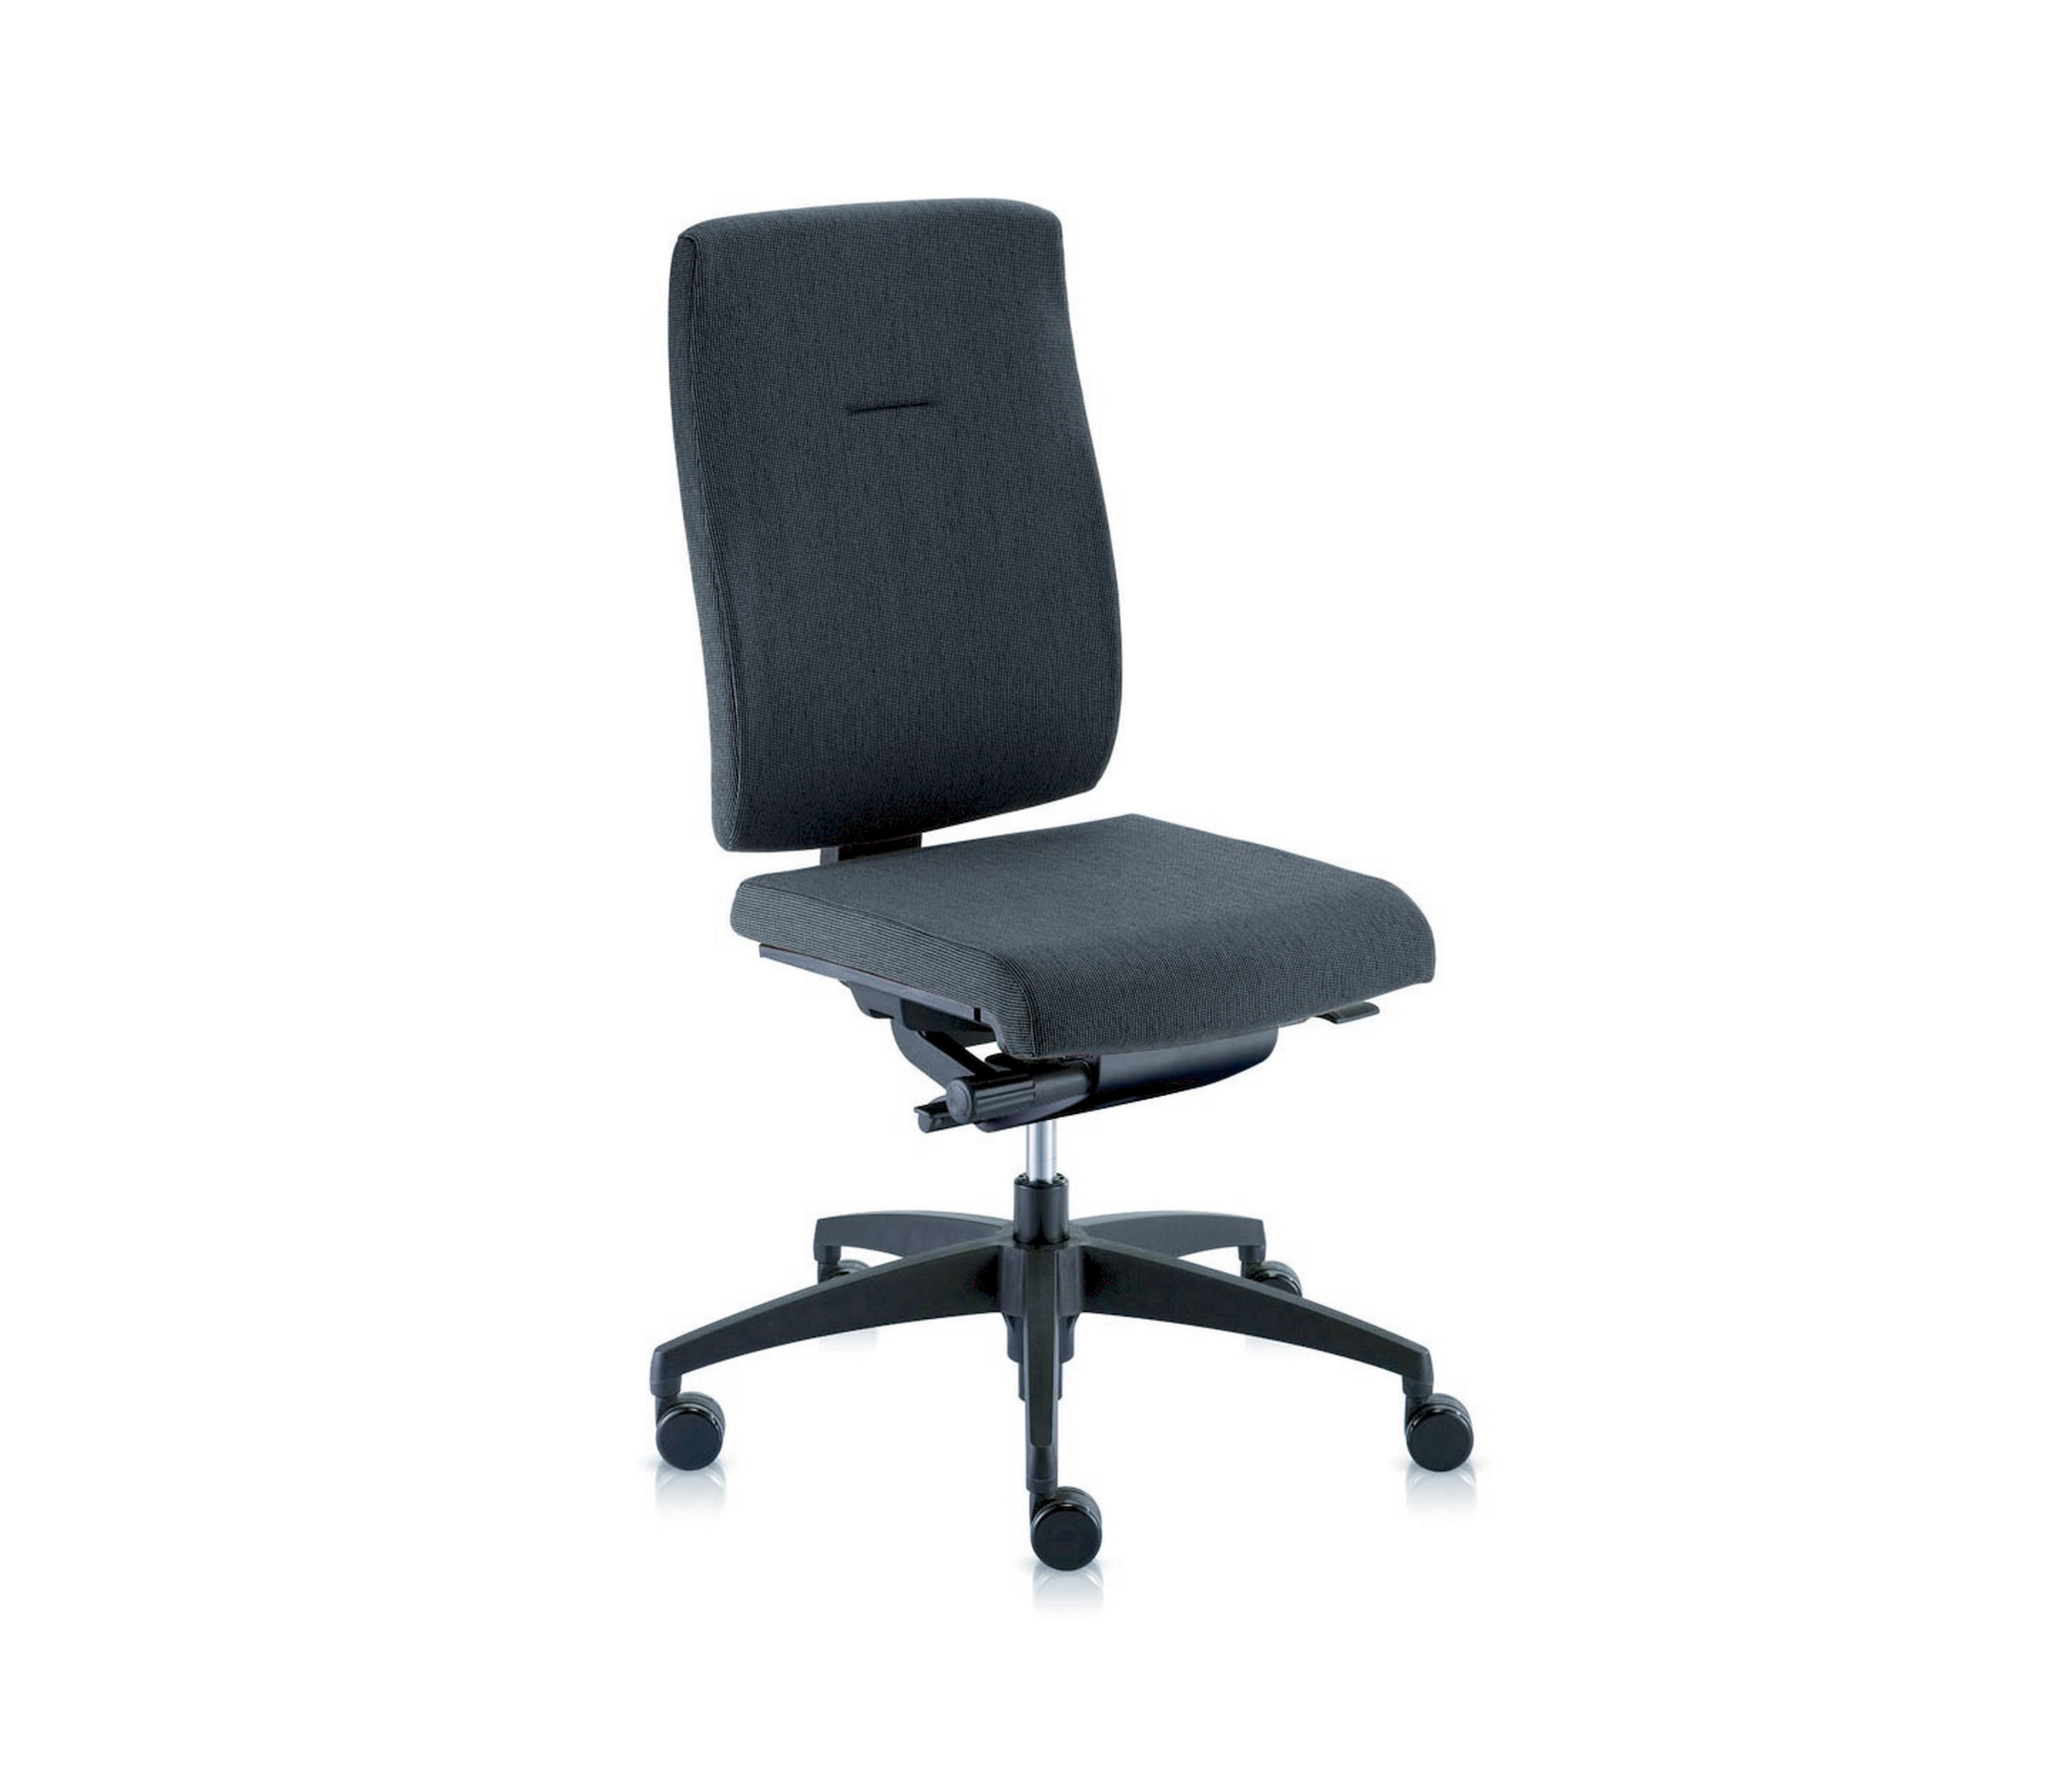 Buerostuhl Shop Sitagpoint Swivel Chair Office Chairs From Sitag Architonic